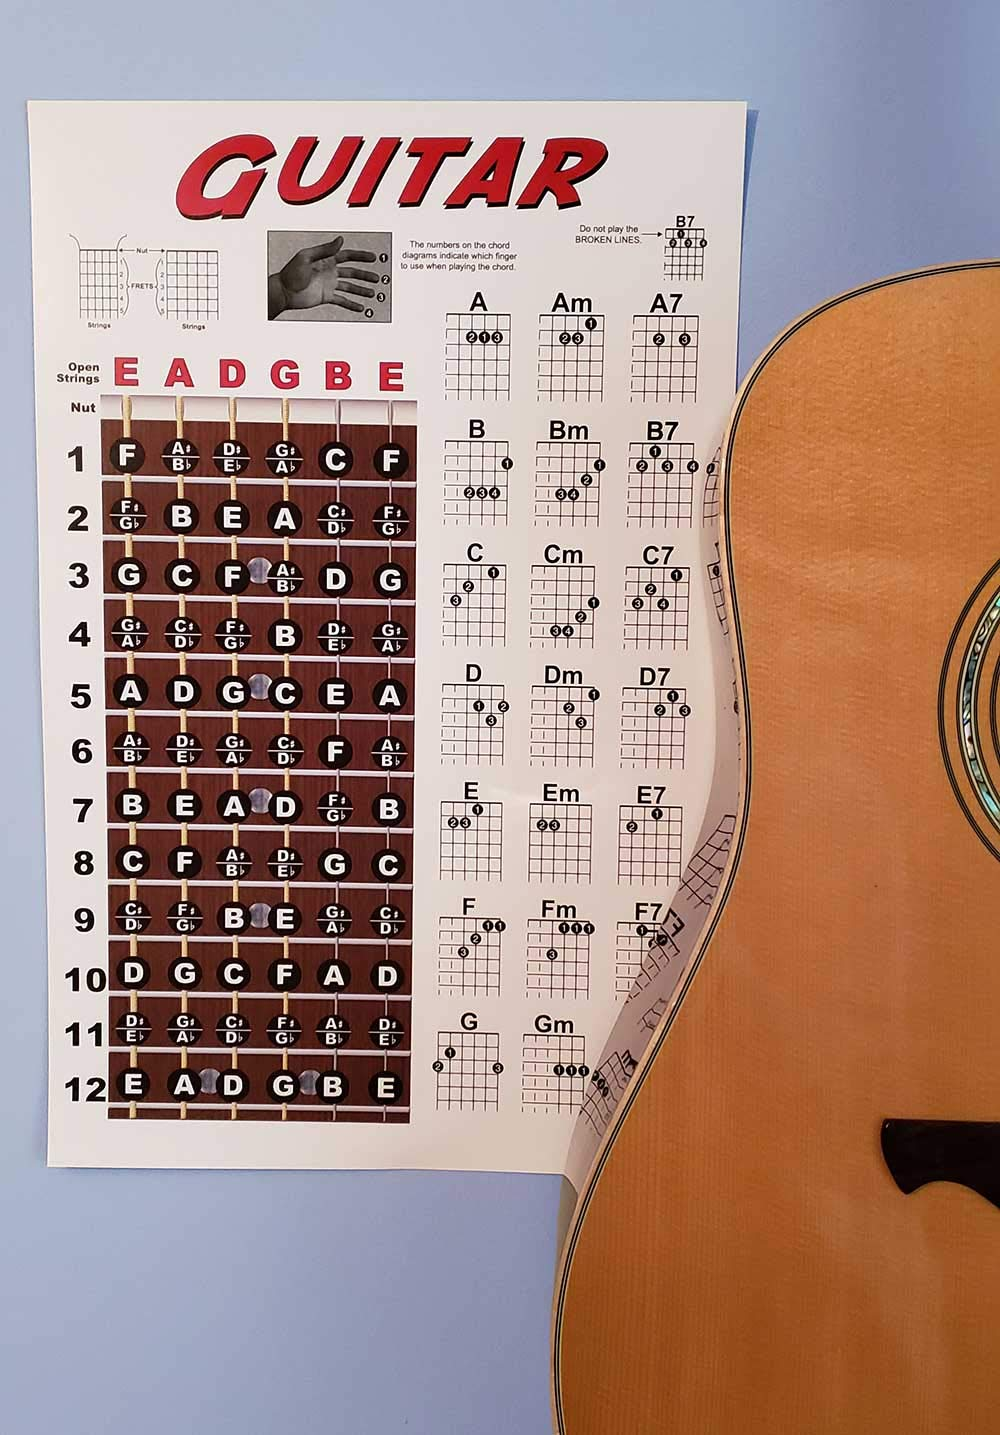 Guitar Fretboard And Chord Chart Instructional Poster How To Read The Diagram Musical Instruments